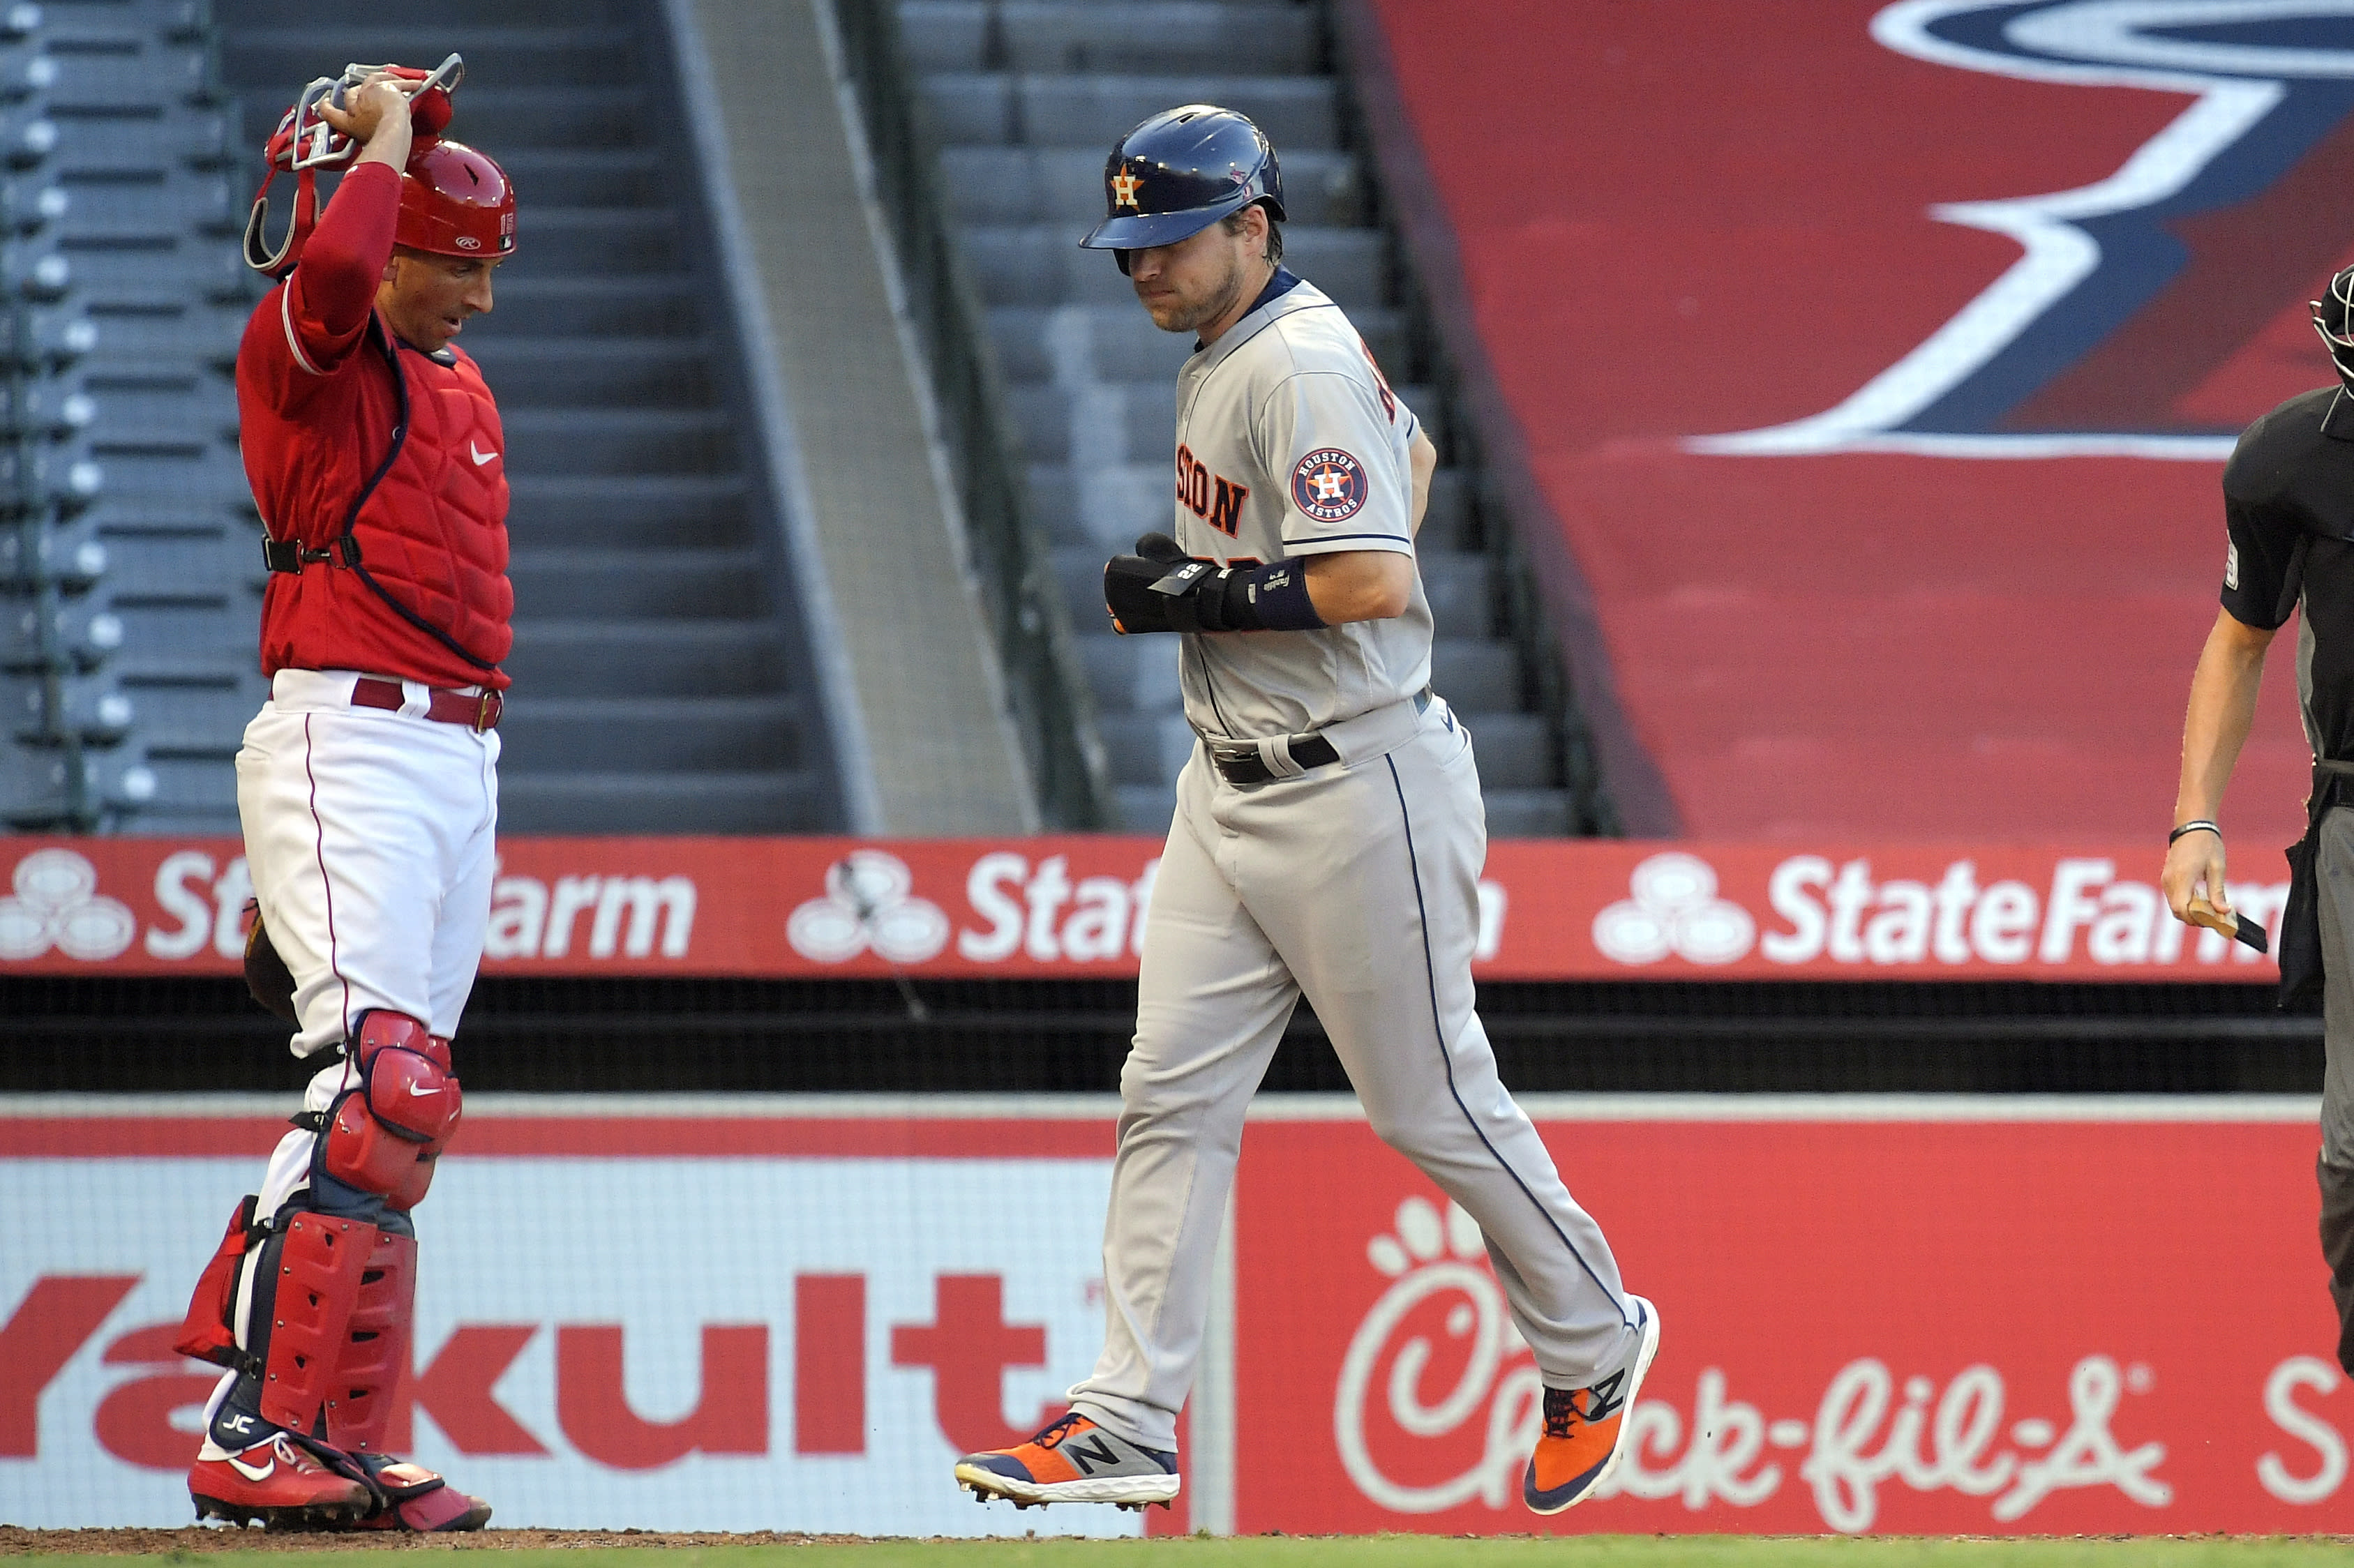 Houston Astros' Josh Reddick, right, scores as Los Angeles Angels catcher Jason Castro watches after George Springer was walked with the bases loaded during the second inning of a baseball game Friday, July 31, 2020, in Anaheim, Calif. (AP Photo/Mark J. Terrill)